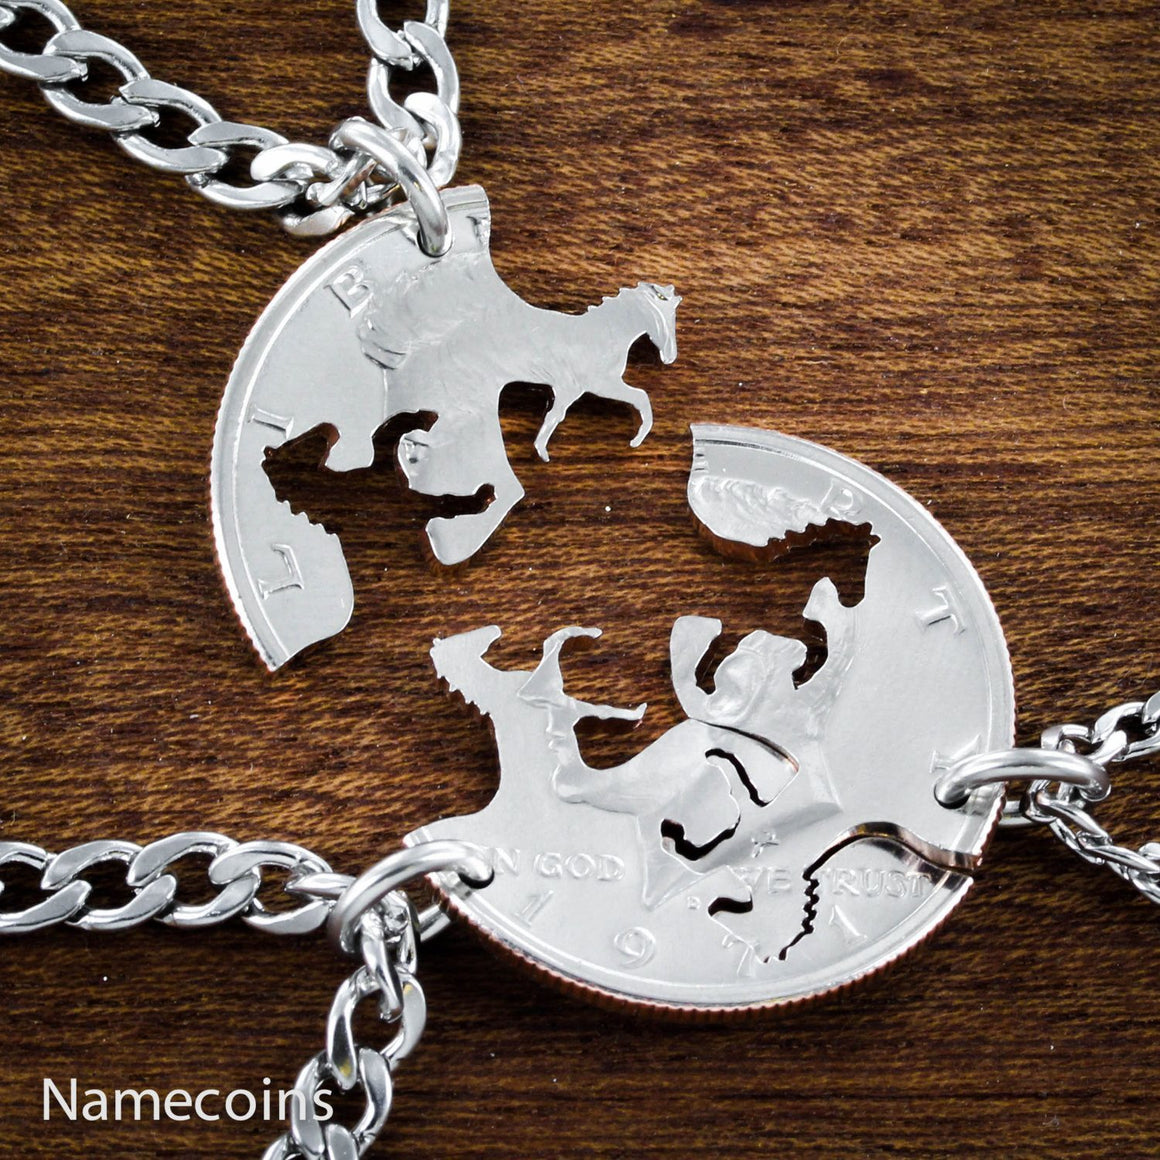 Horse Lovers - 3 Horses Necklaces, Best Friends Jewelry, Interlocking Handcrafted Cut Half Dollar